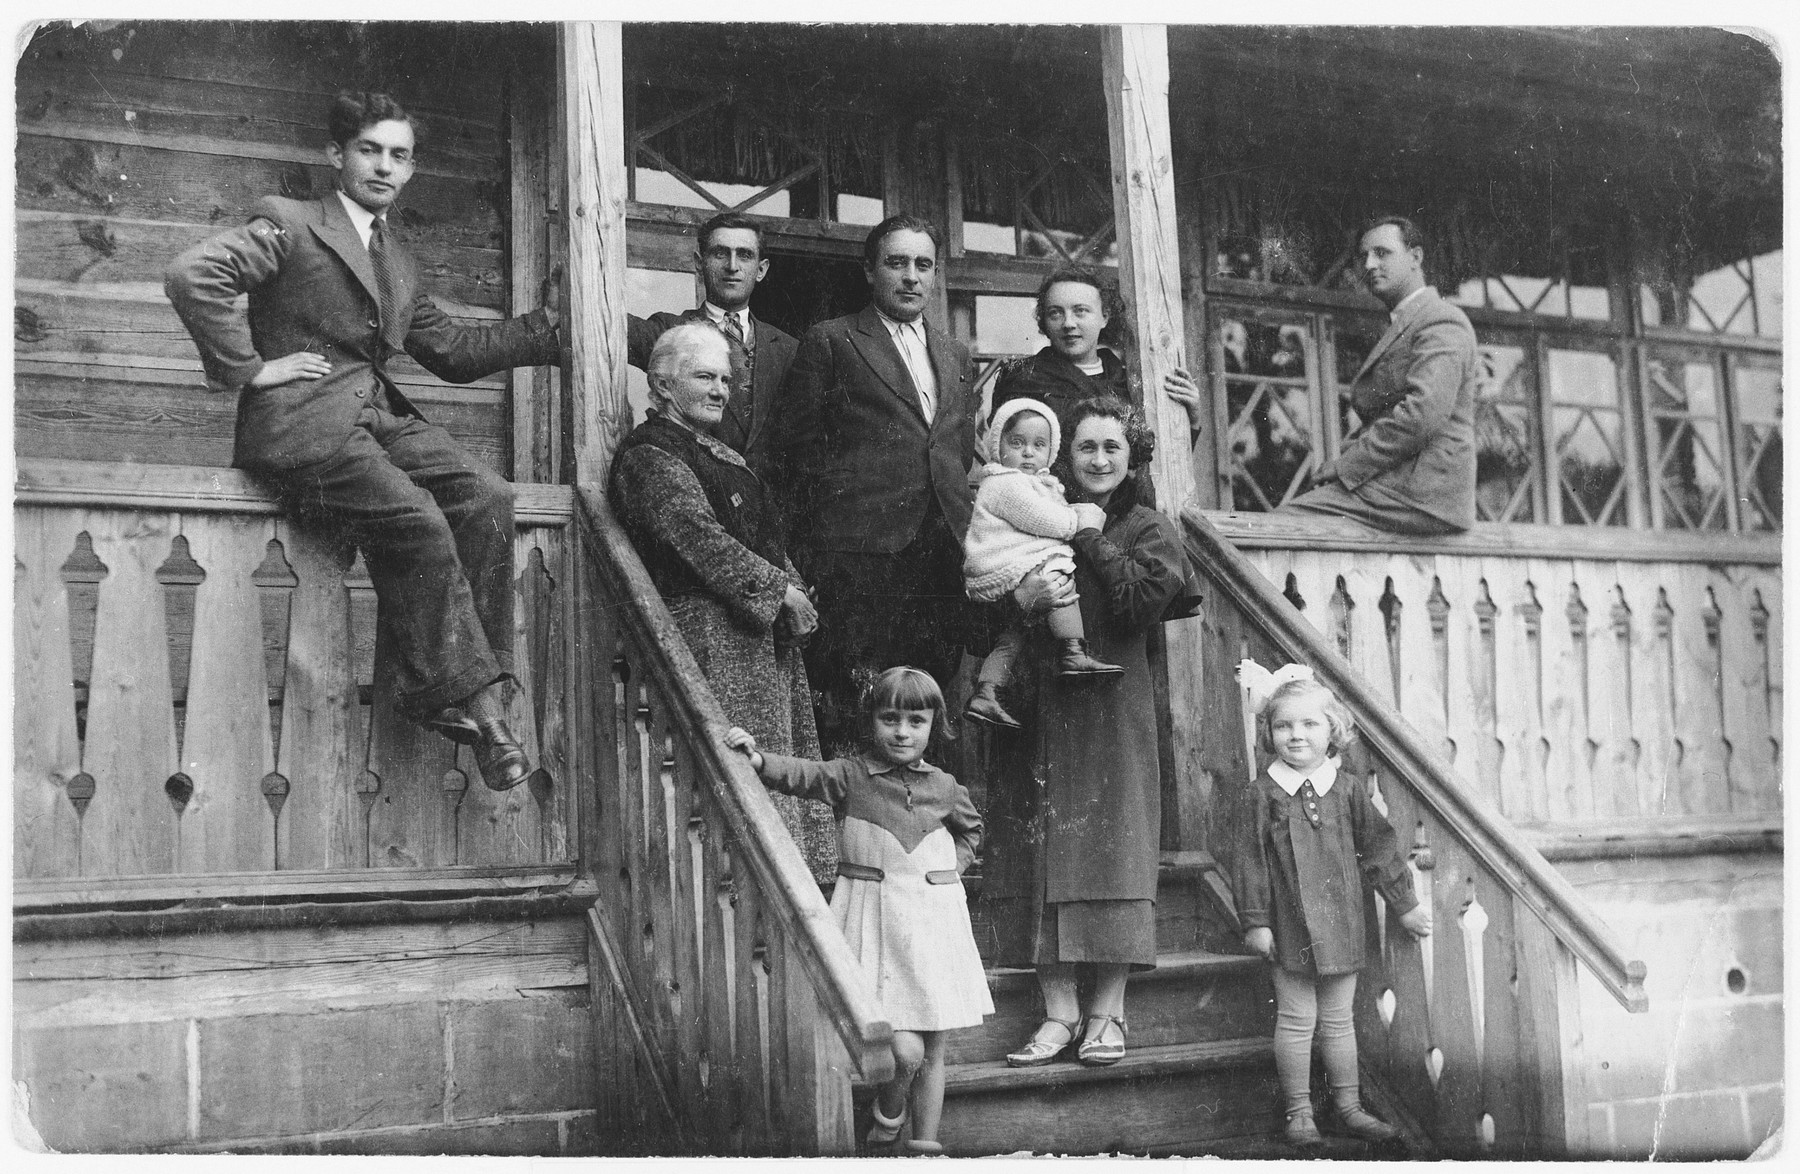 A group of friends and relatives vacation together in a wood summer home outside of Bielsk Podlaski.  Among those pictured are Helena Storch, her mother Genia Storch and grandmother, Tsivia Kac.